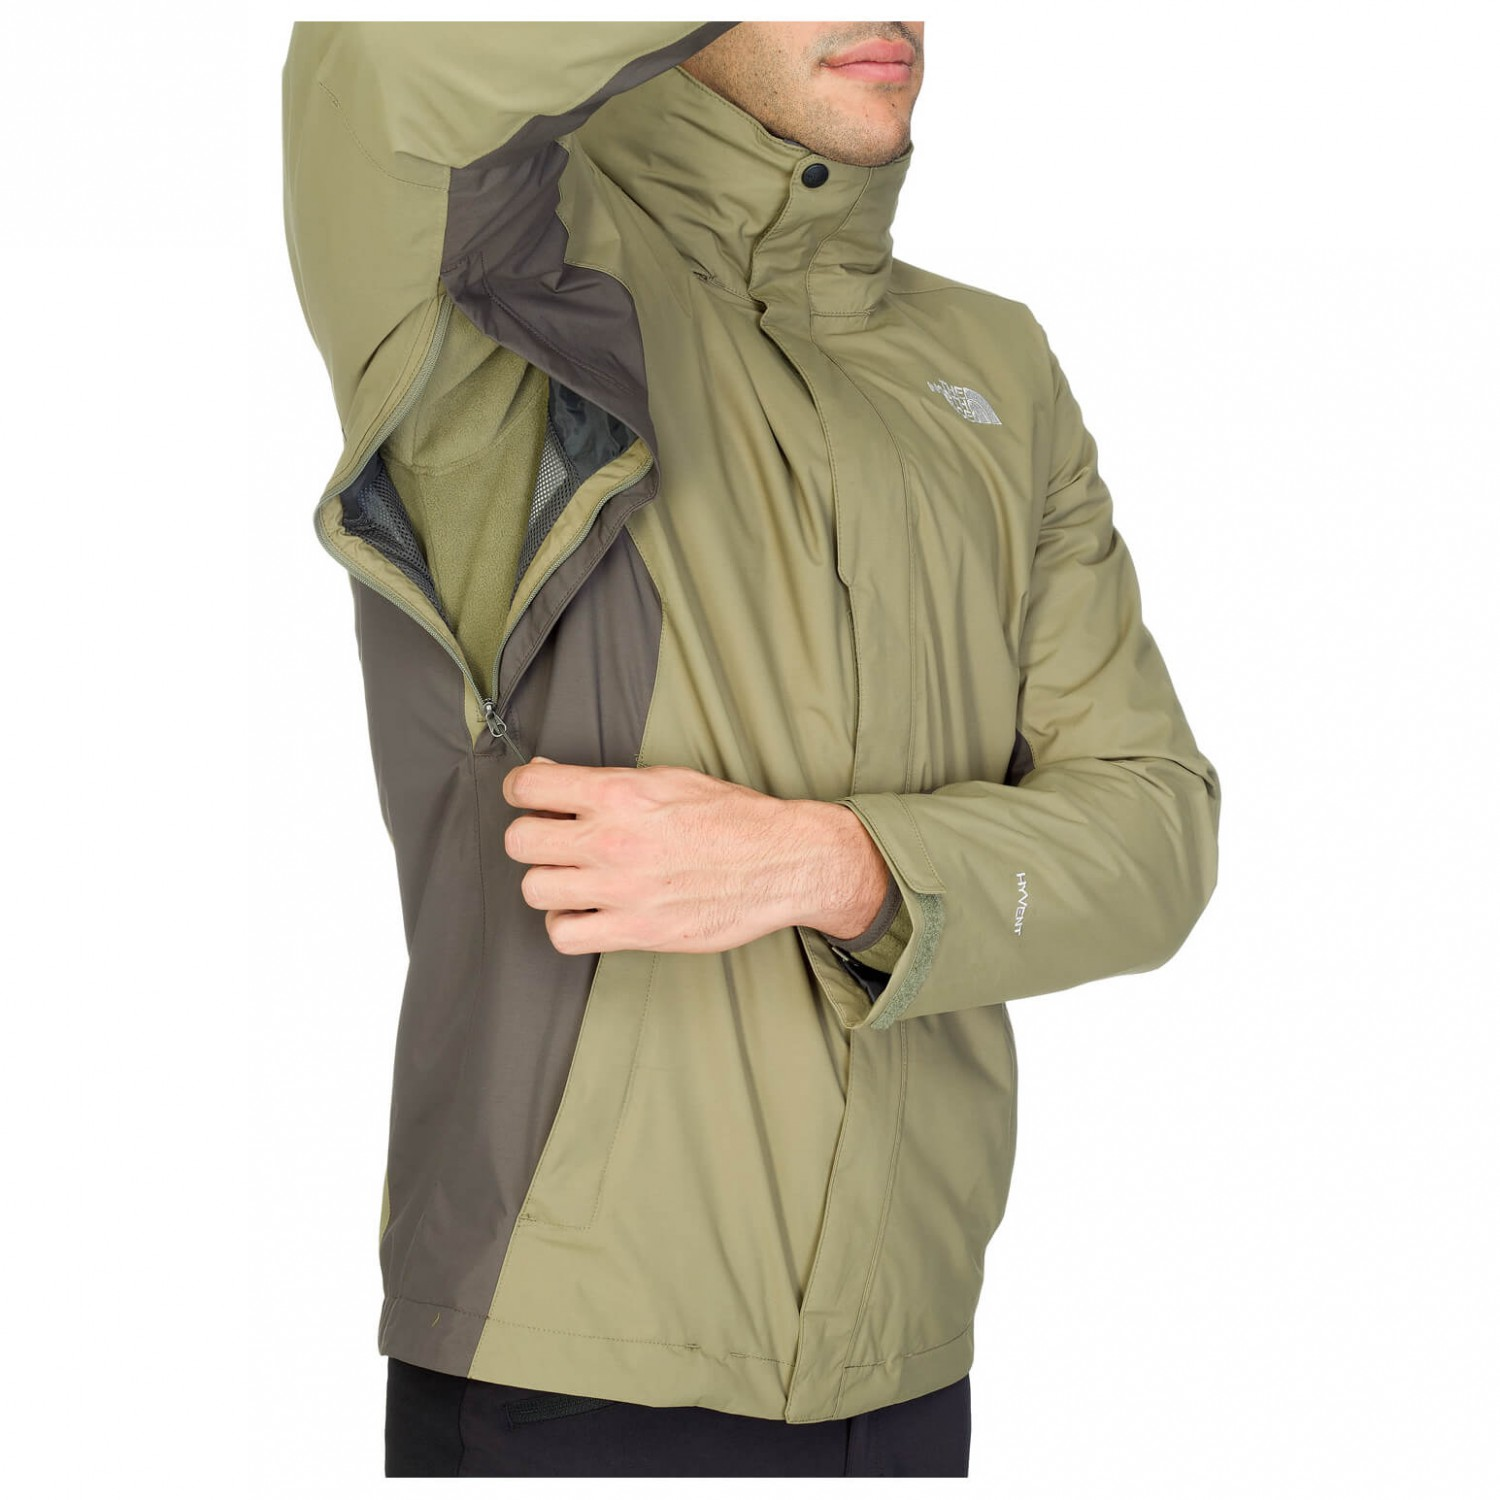 ... The North Face - Evolution II Triclimate - 3-in-1 jacket ... 2ea1c0a6982e